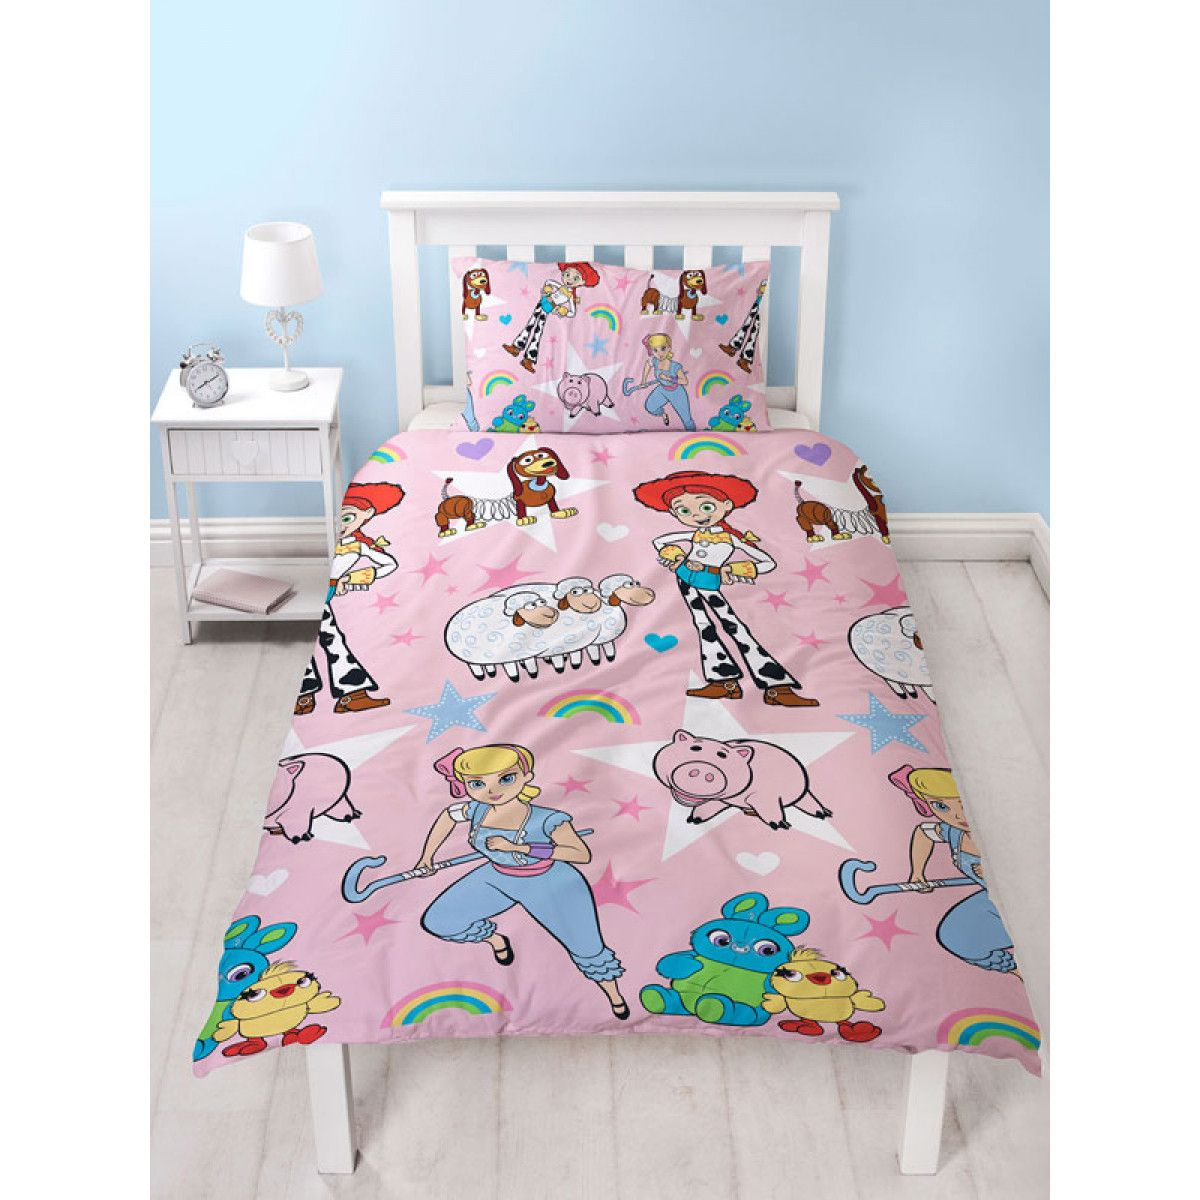 DISNEY GIRLS BOYS KIDS CHILDREN TV CHARACTER JUNIOR TODDLER DUVET COVER SET NEW